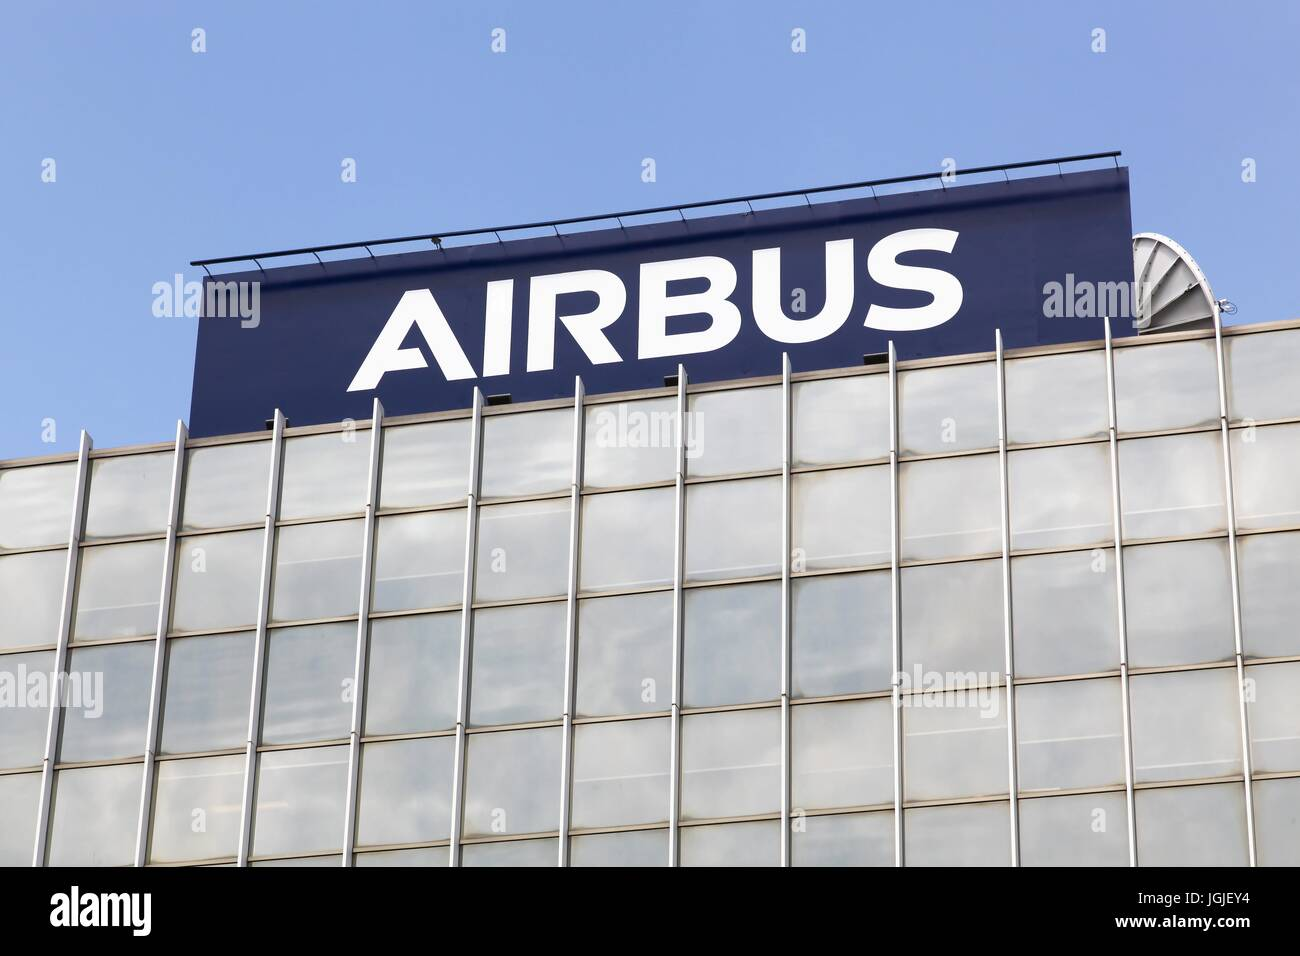 Toulouse,  France - June 2, 2017: Airbus is a division of the multinational Airbus SE that manufactures civil aircraft - Stock Image